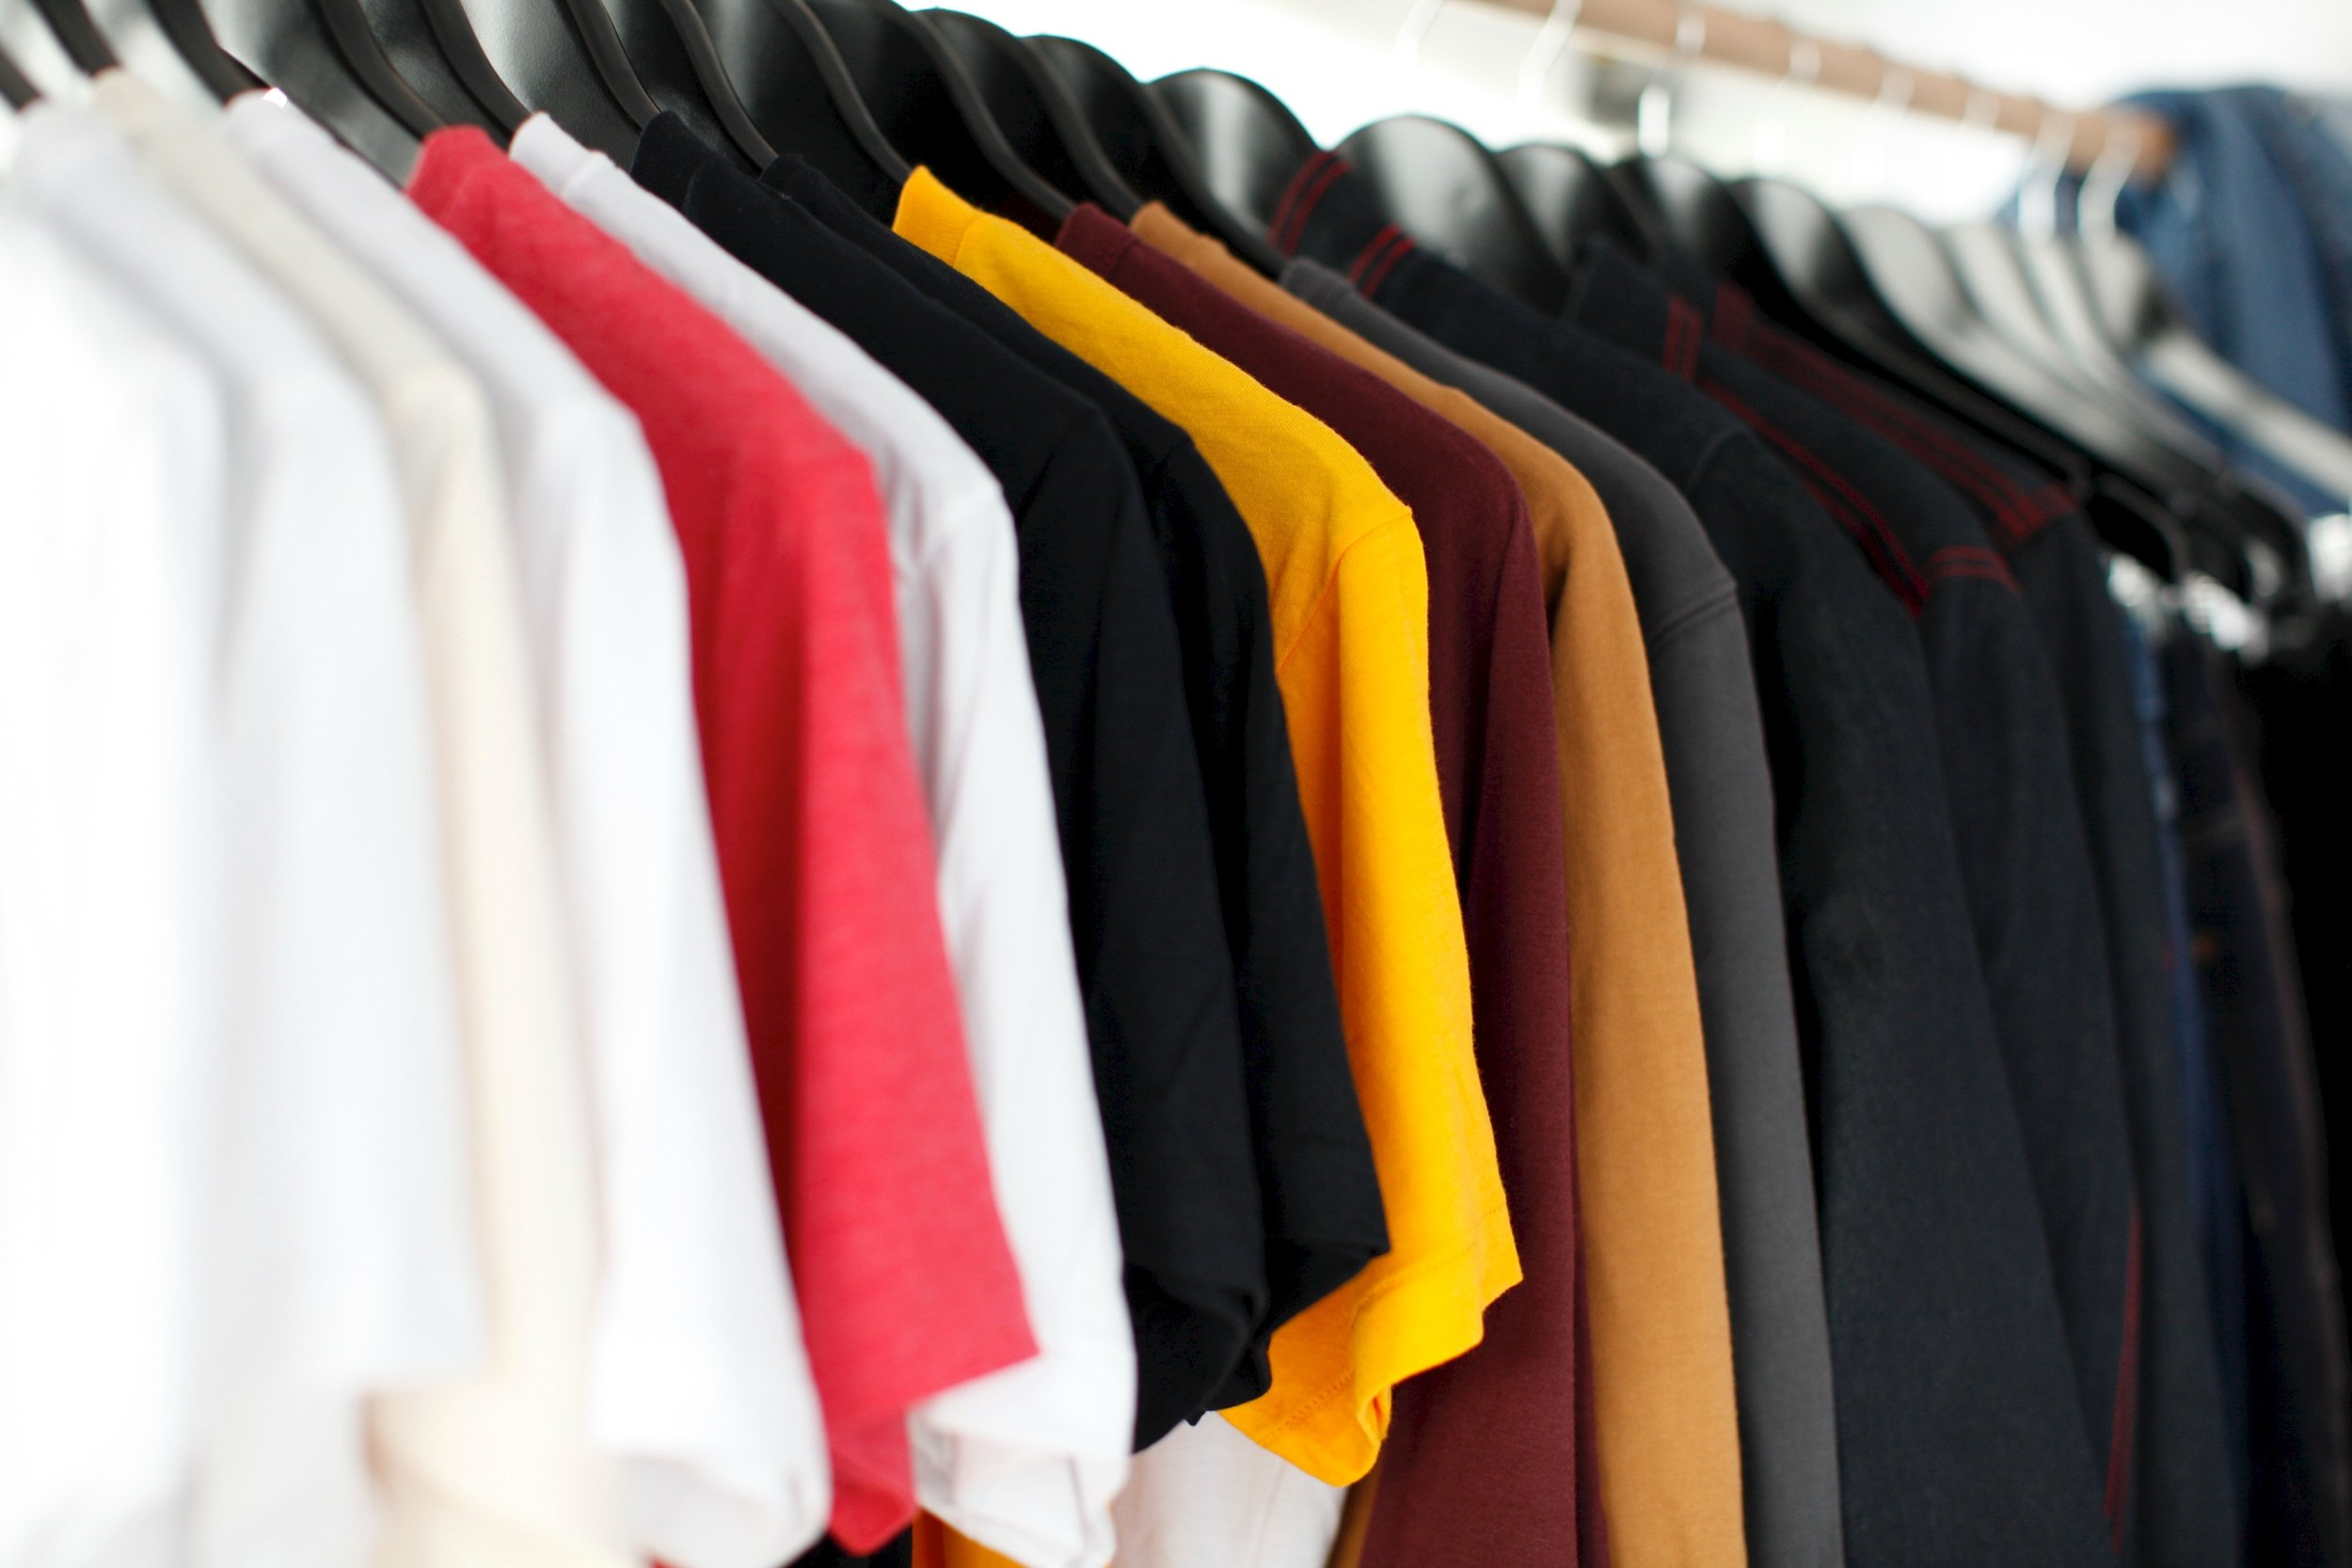 Custom Apparel - WE WORK WITH BUSINESSES, NON-PROFITS, BANDS, TEAMS, AND OTHER FASHION LINES TO PRODUCE HIGH QUALITY APPAREL AND PRODUCTS FOR OUR CLIENTS. WE ARE KNOWN FOR OUR EXCELLENT CUSTOMER SERVICE AND QUICK TURNAROUNDS.